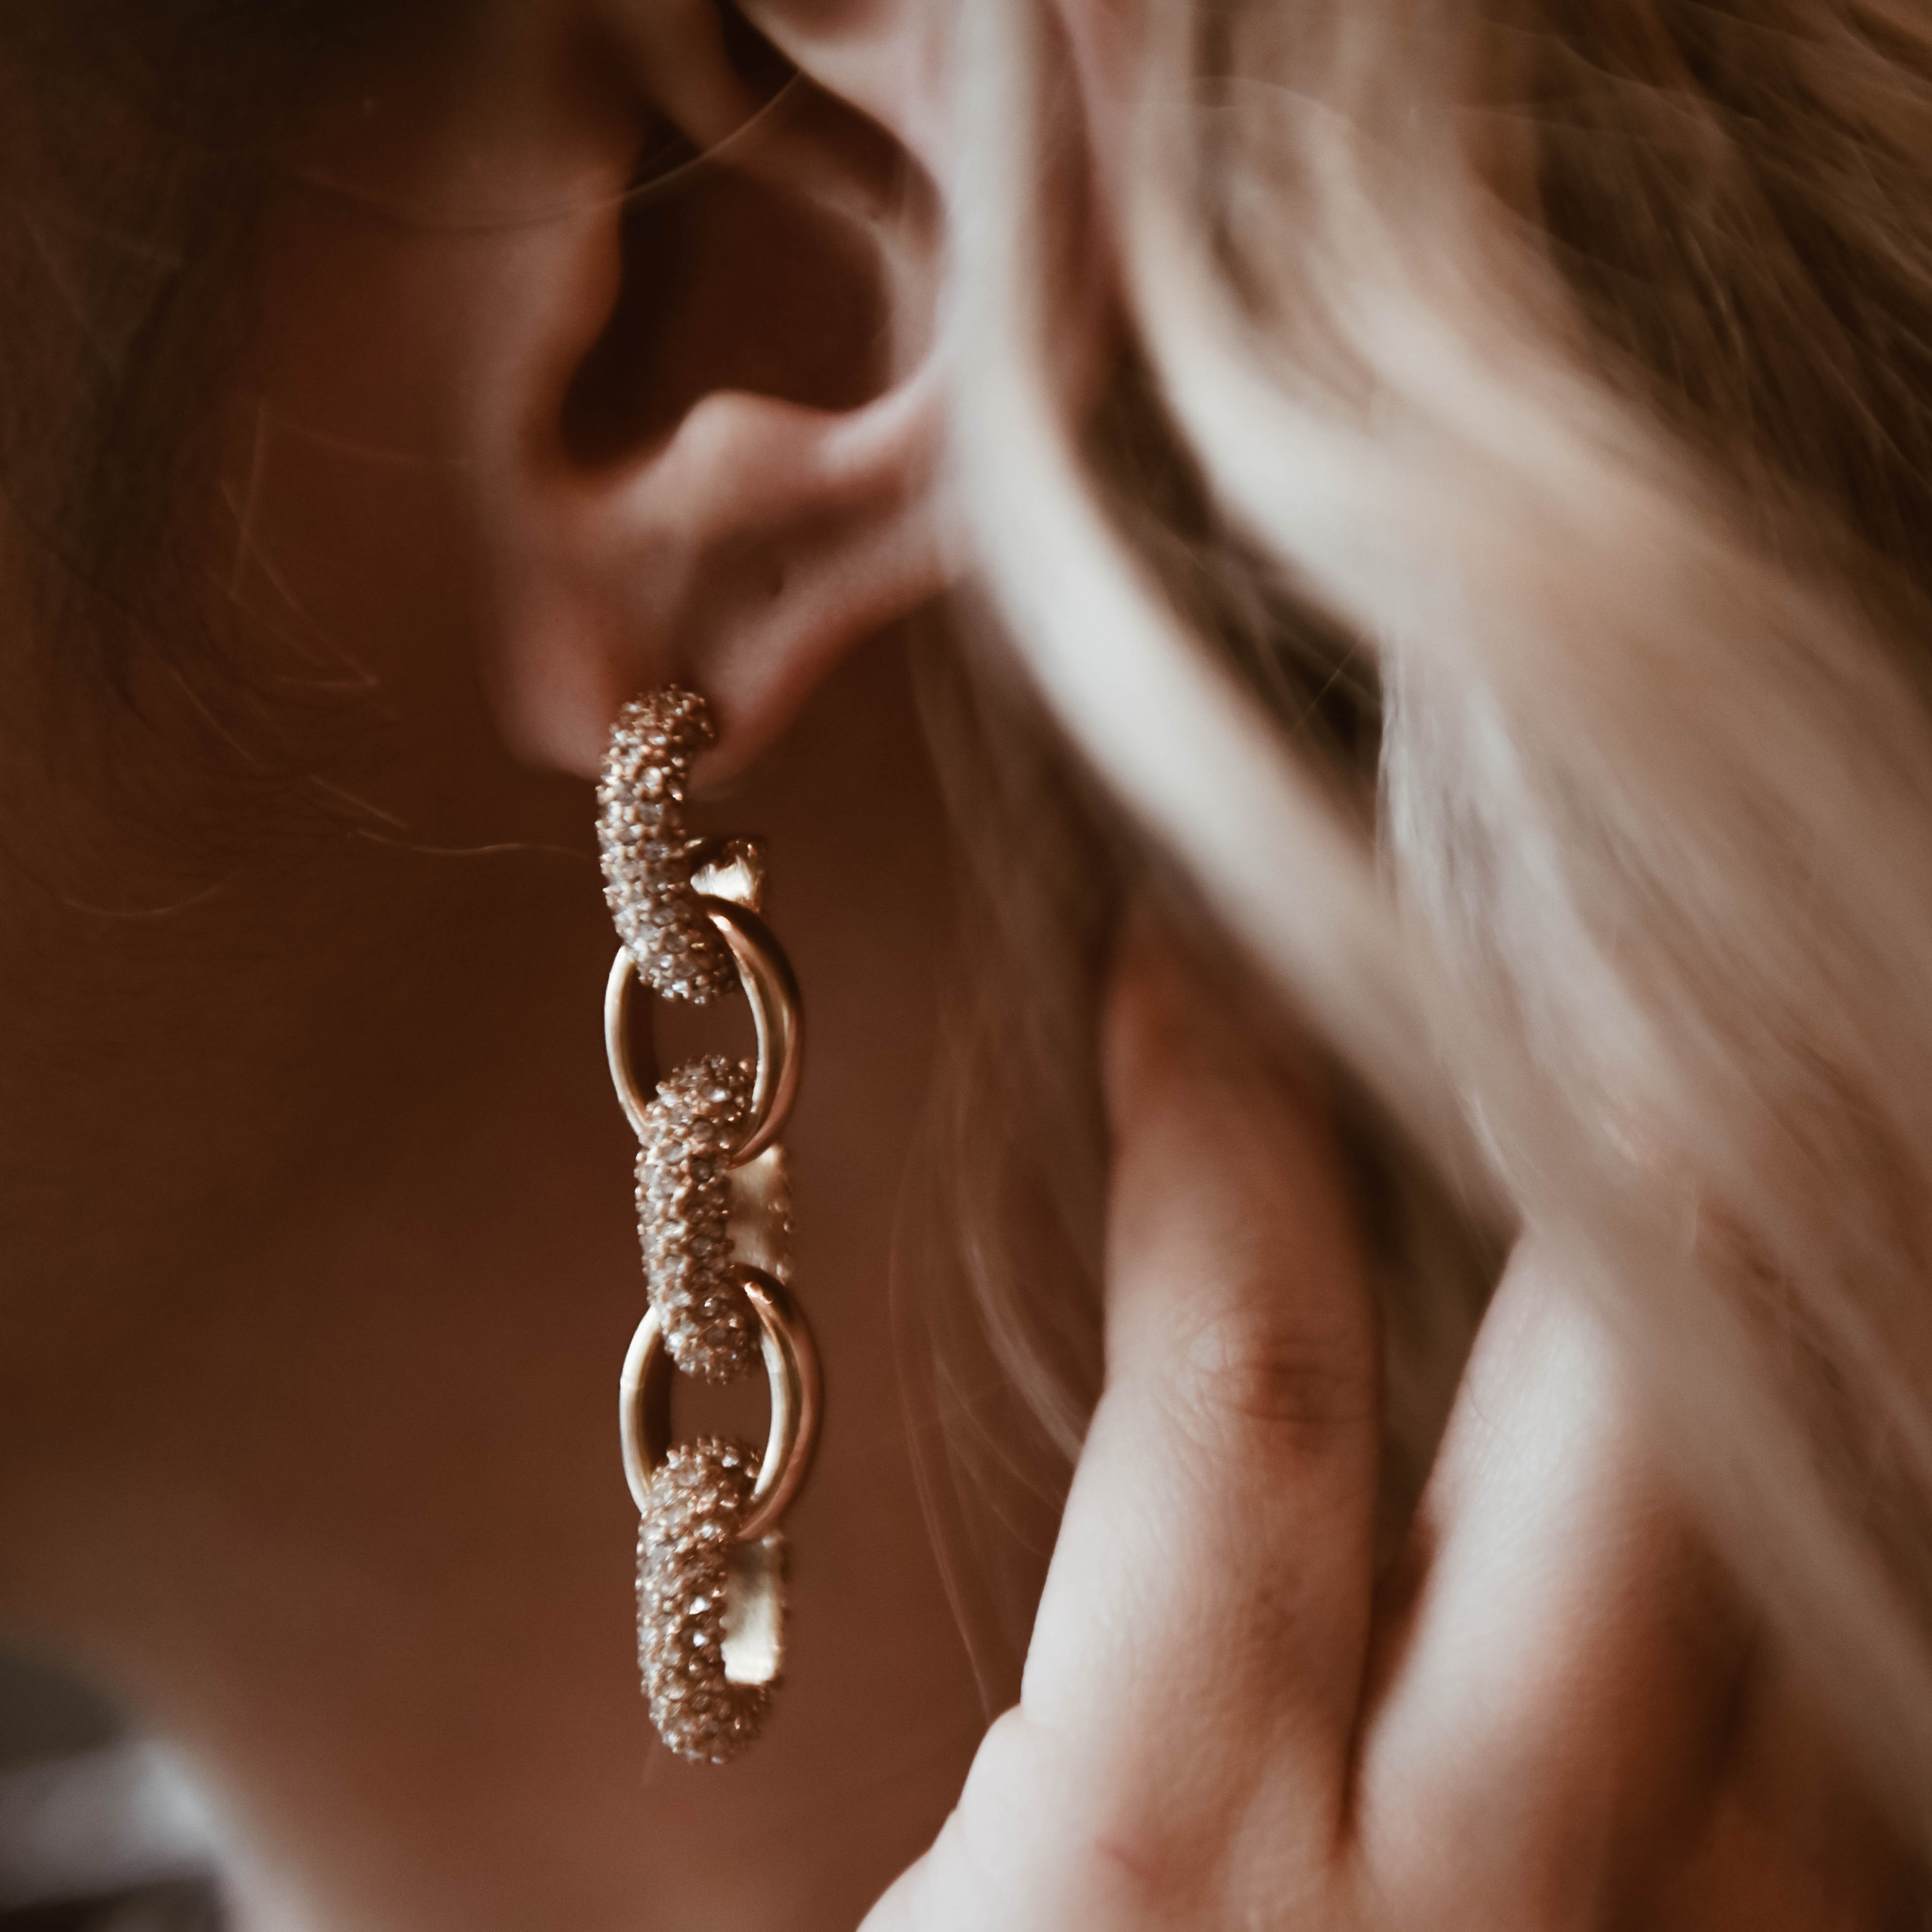 Still dreaming of these beautiful chain link earrings from Banana Republic.